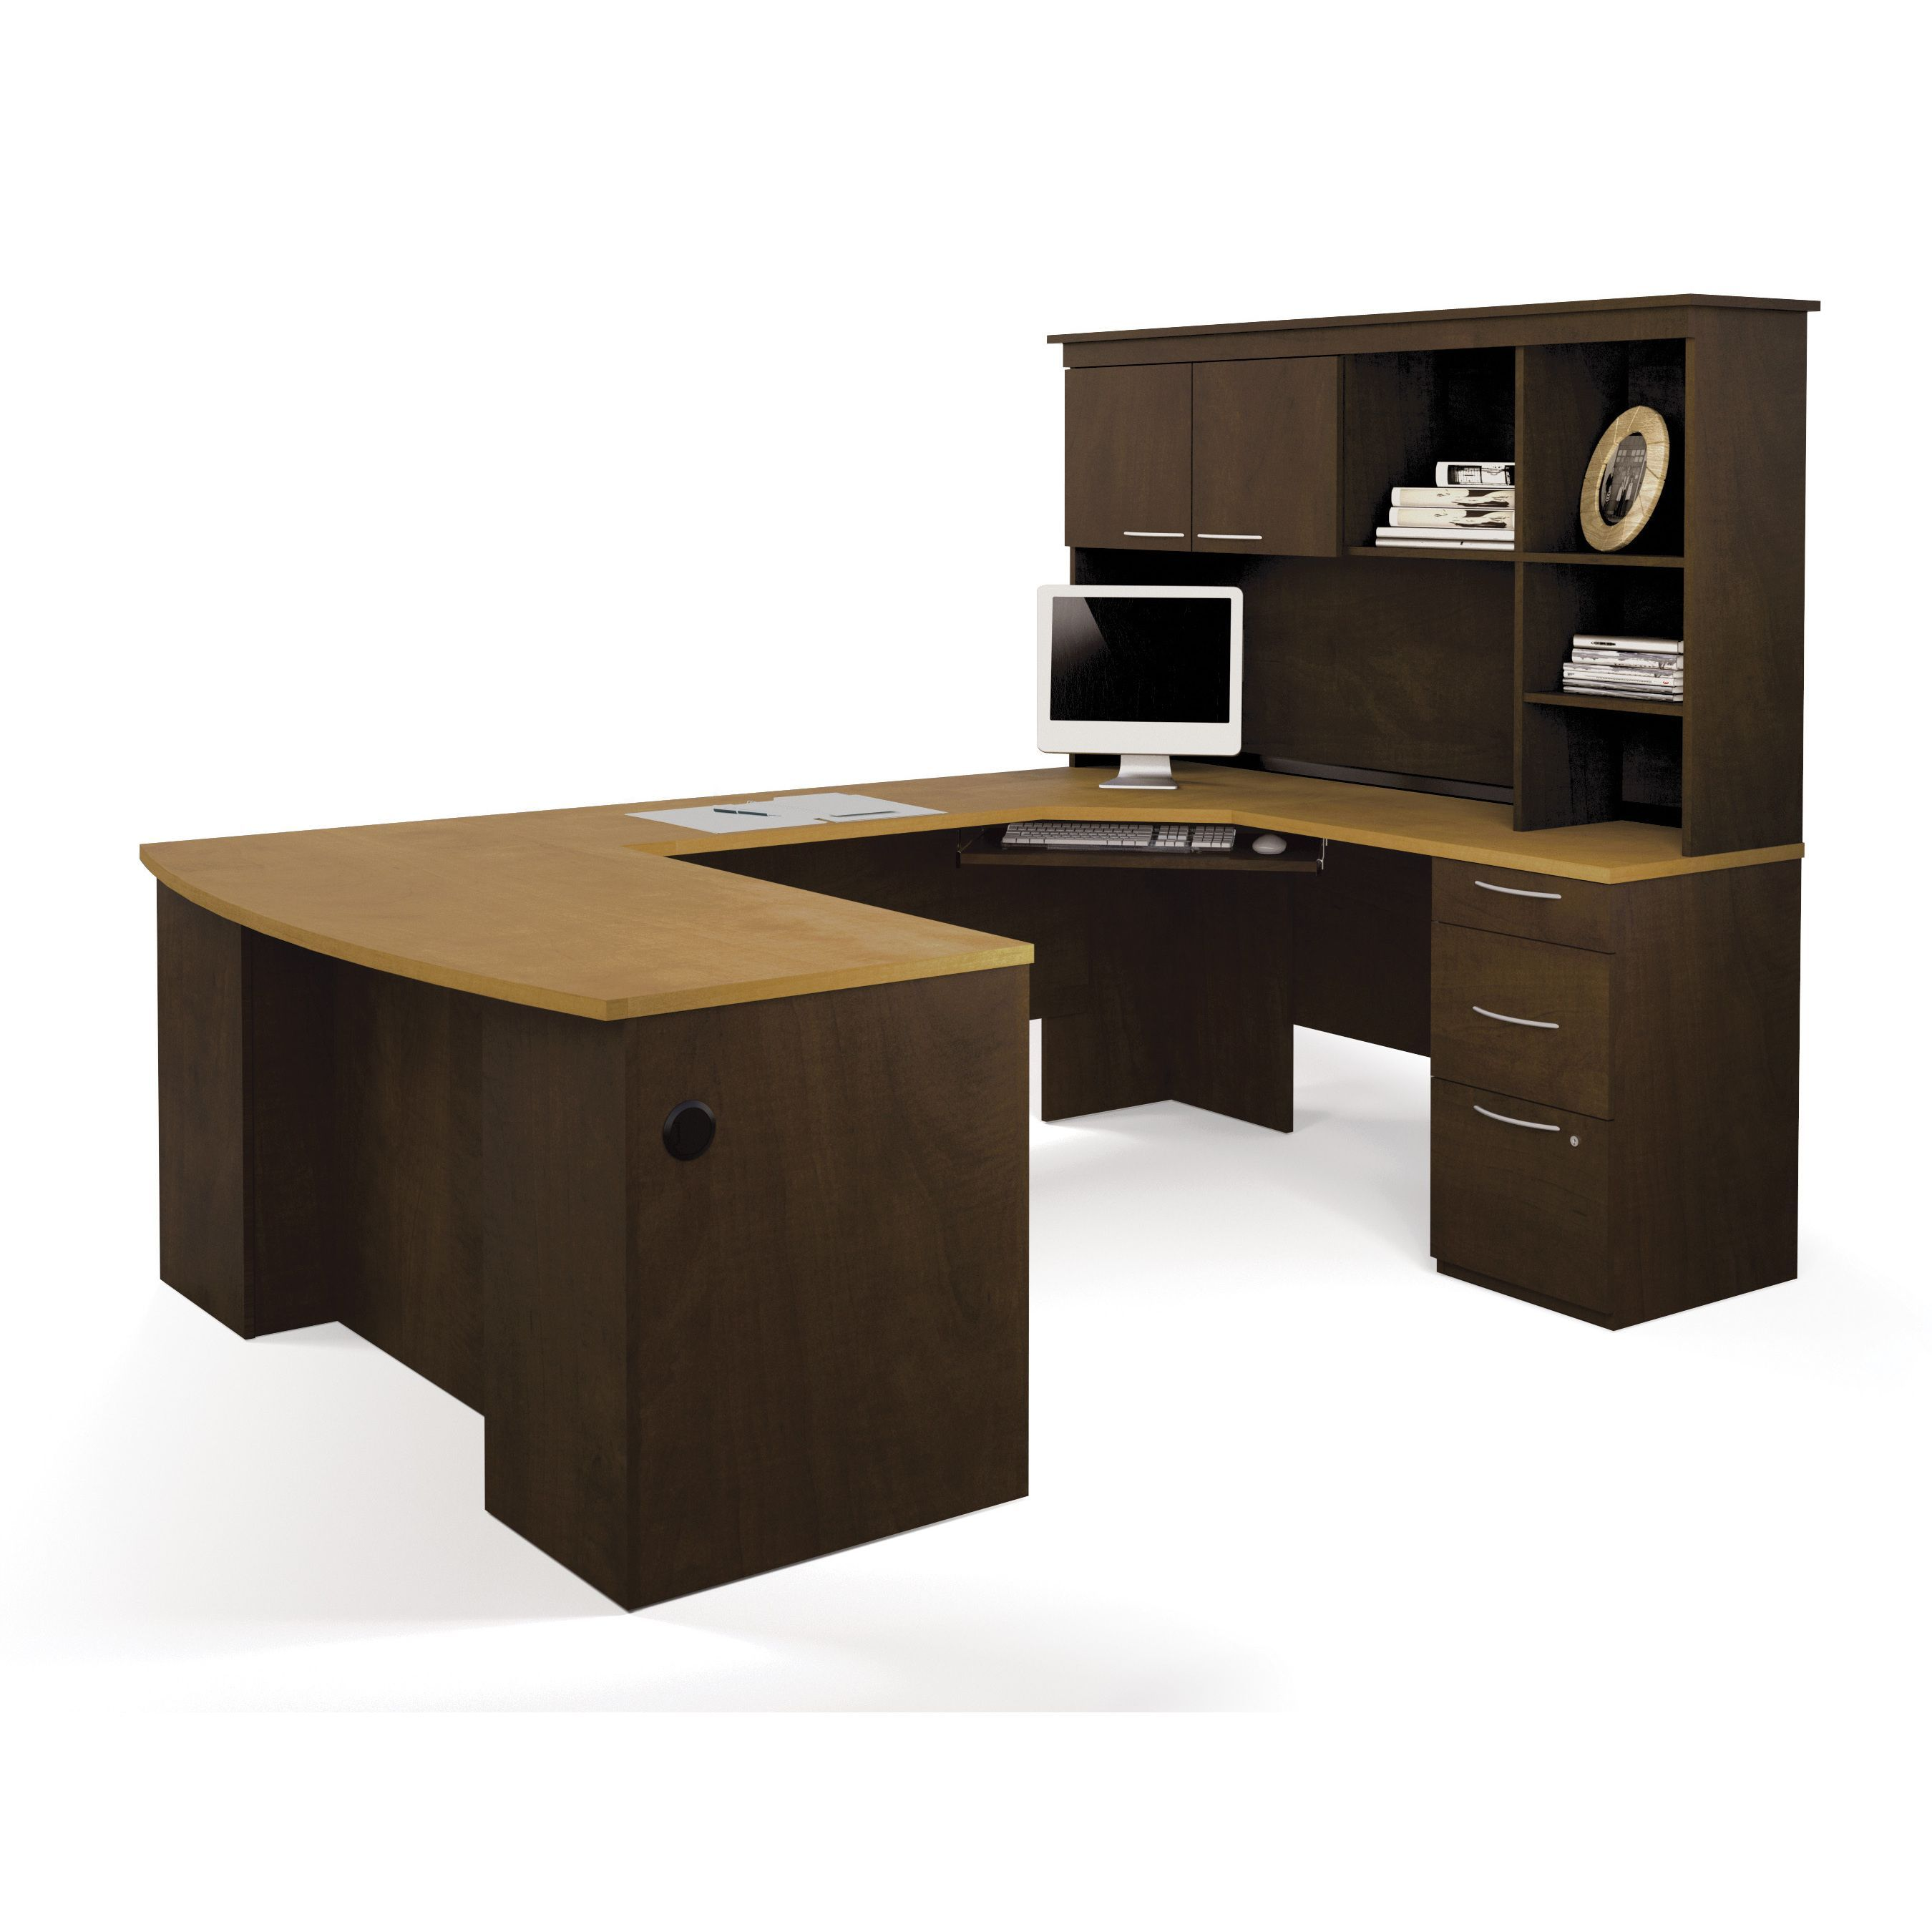 office work surfaces. The Desk Features Durable 1-inch Commercial-grade Work Surfaces With Melamine Finish That Office O